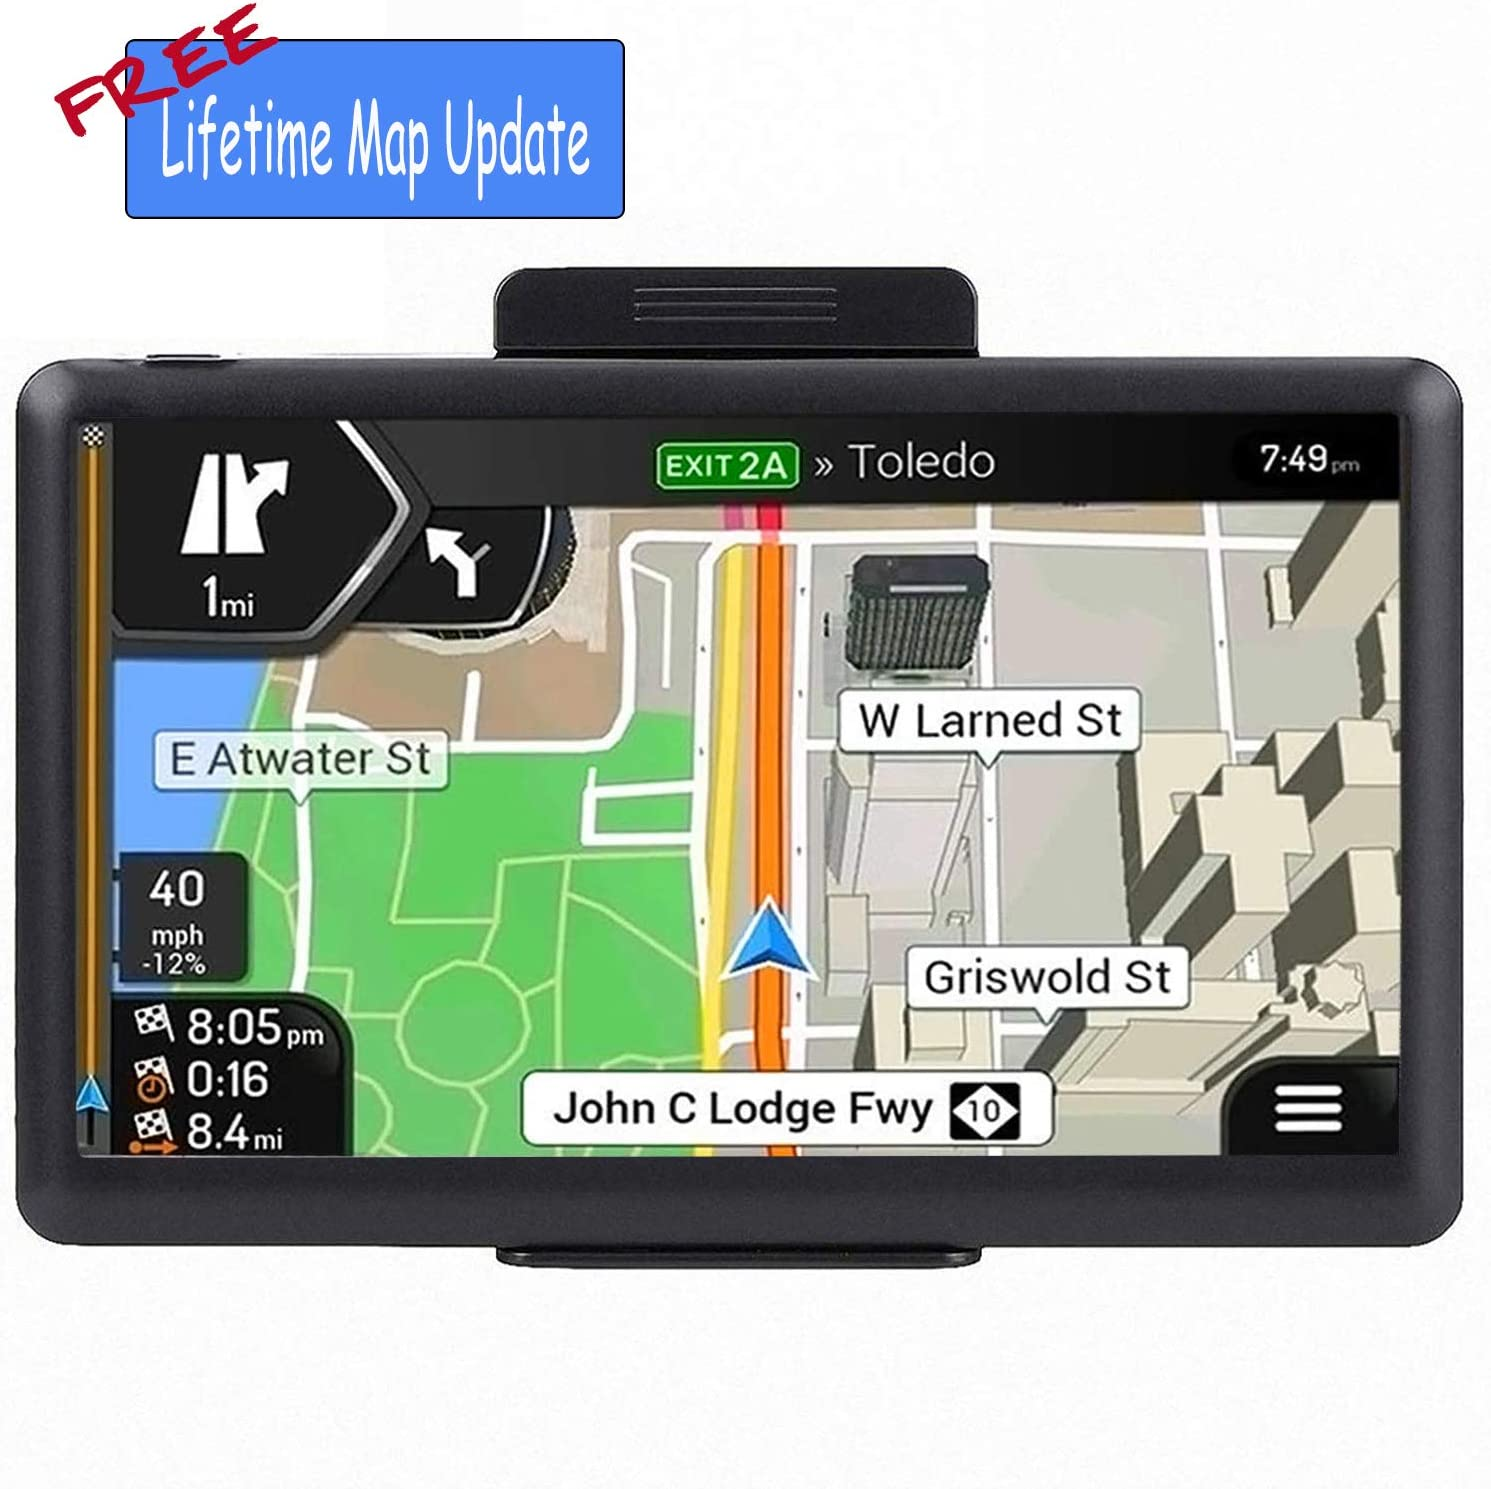 Voice Turn Indication GPS Navigation System North America 7-inch LCD Screen Universal Truck//Car Satellite Navigation GPS Navigation for Car Central America,Free Lifetime Map Update Speed Alert